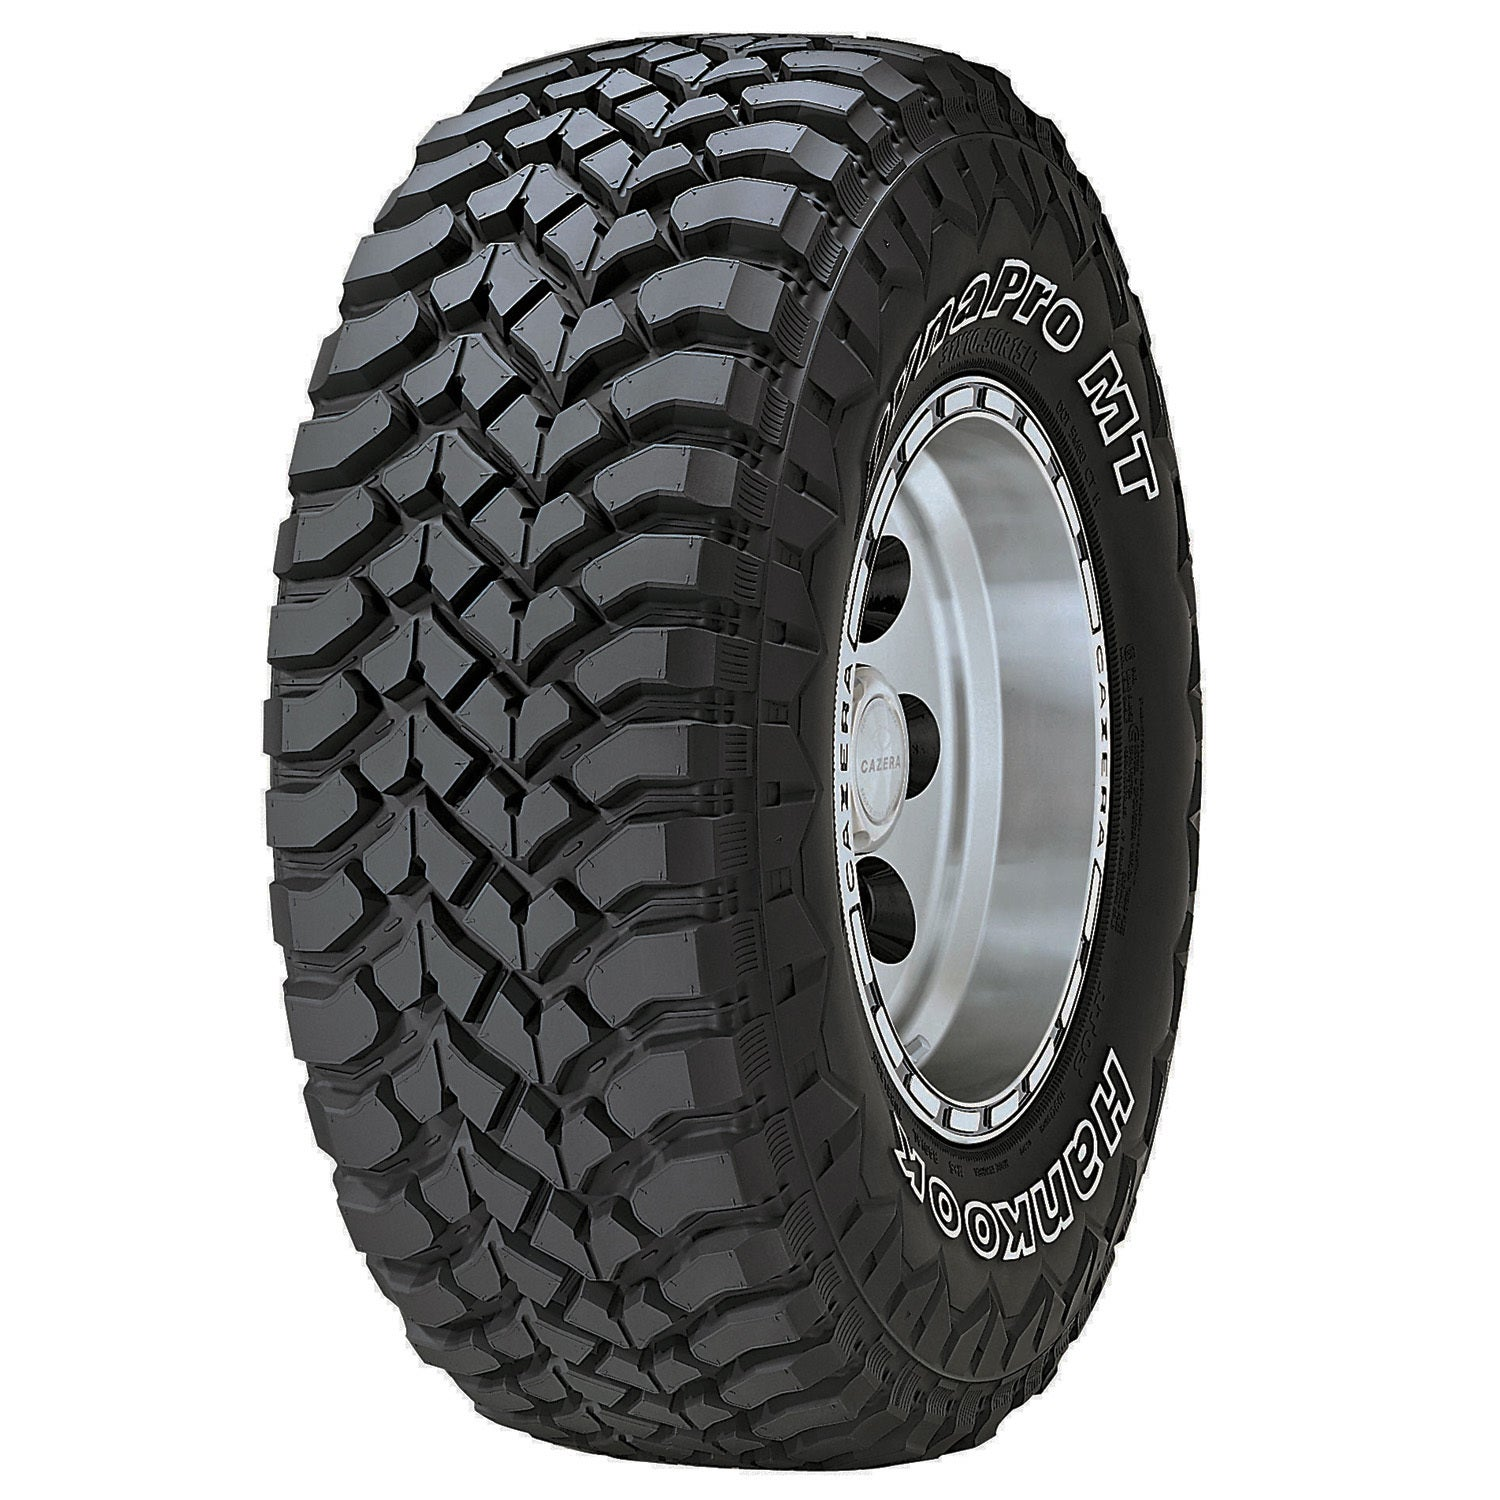 Hankook Dynapro MT RT03 Off Road Tire - 33X12.50R15 LRC/6...